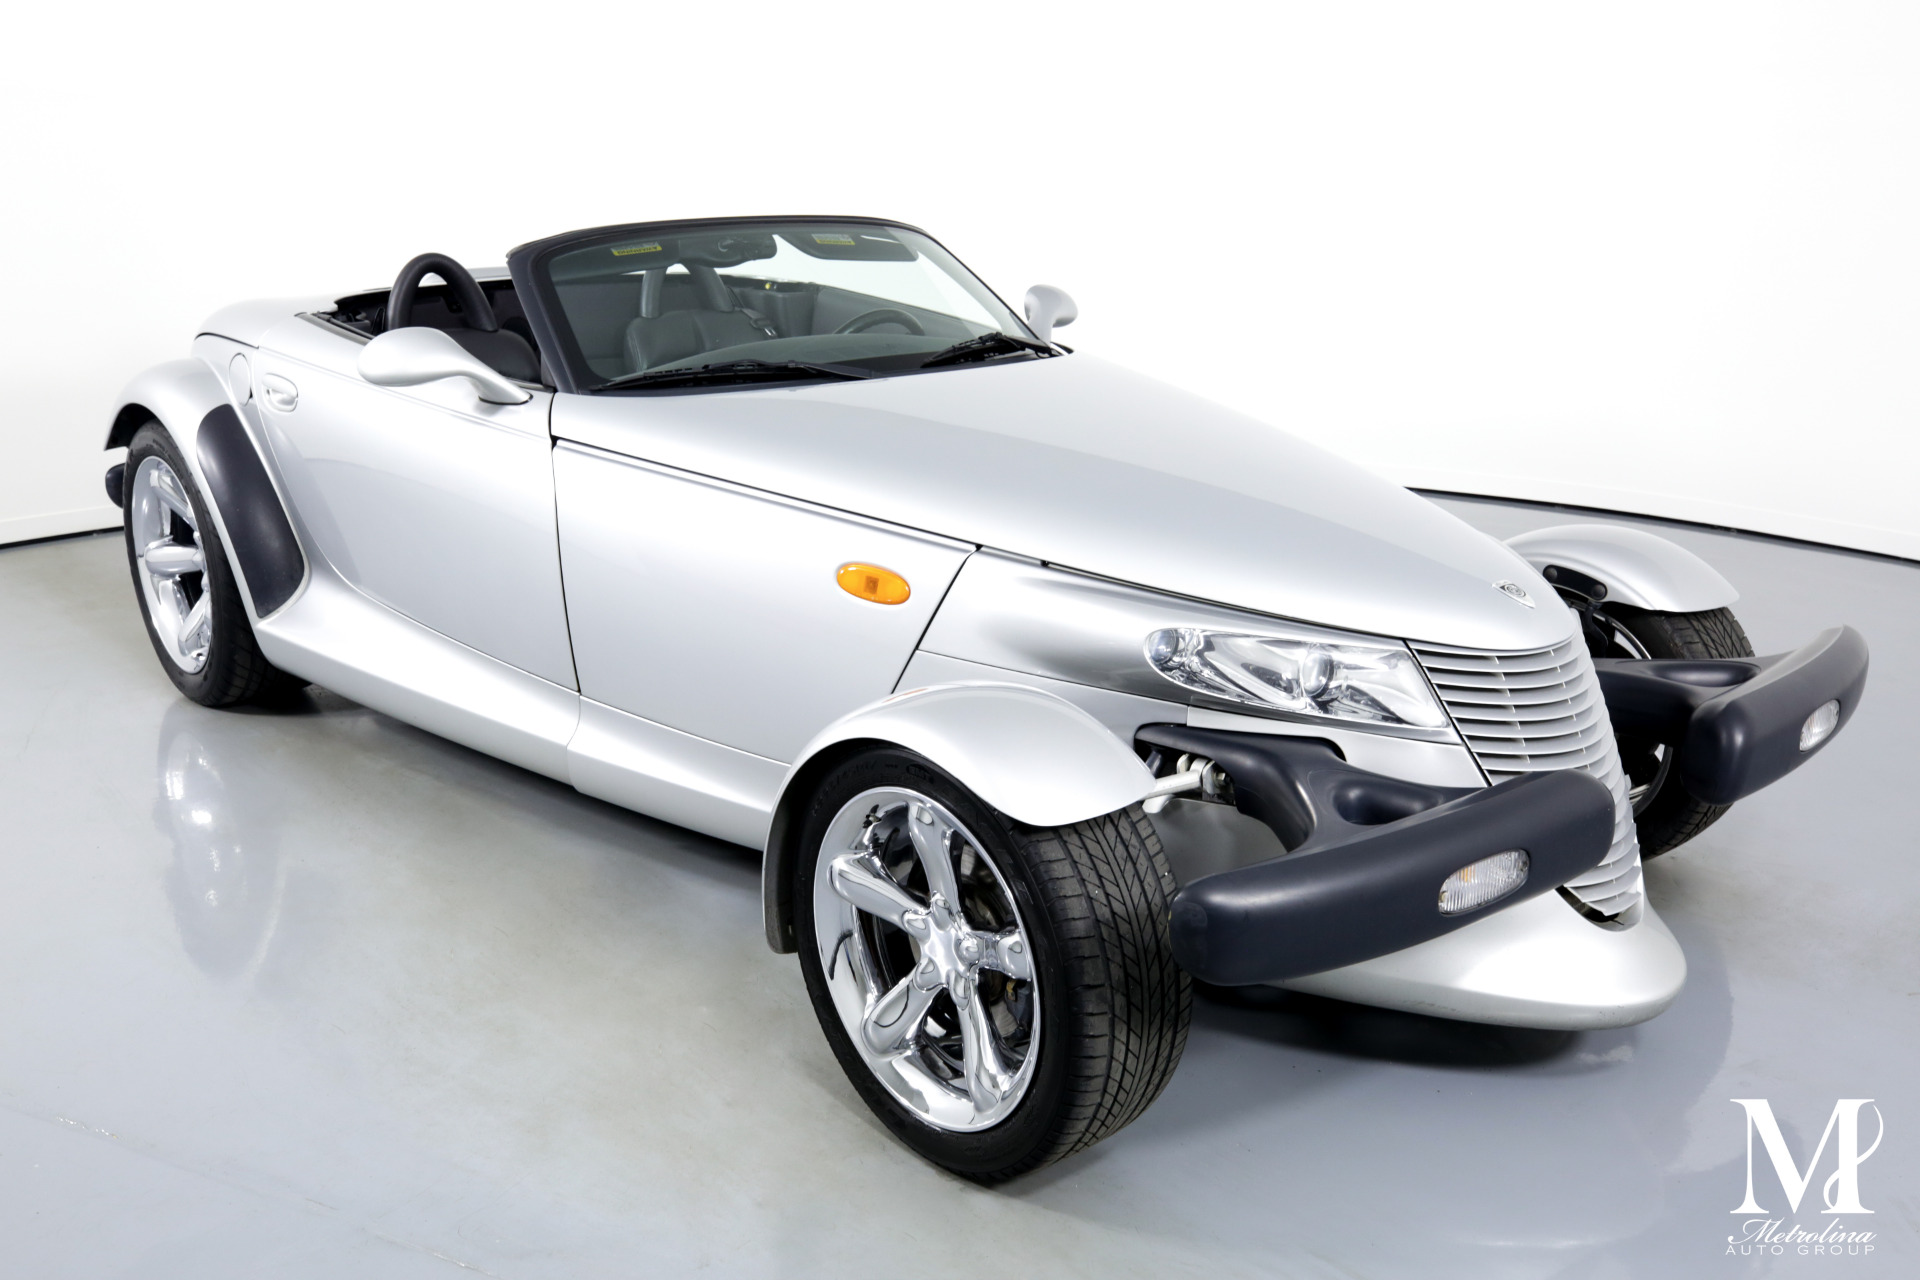 Used 2001 Chrysler Prowler for sale $25,996 at Metrolina Auto Group in Charlotte NC 28217 - 3